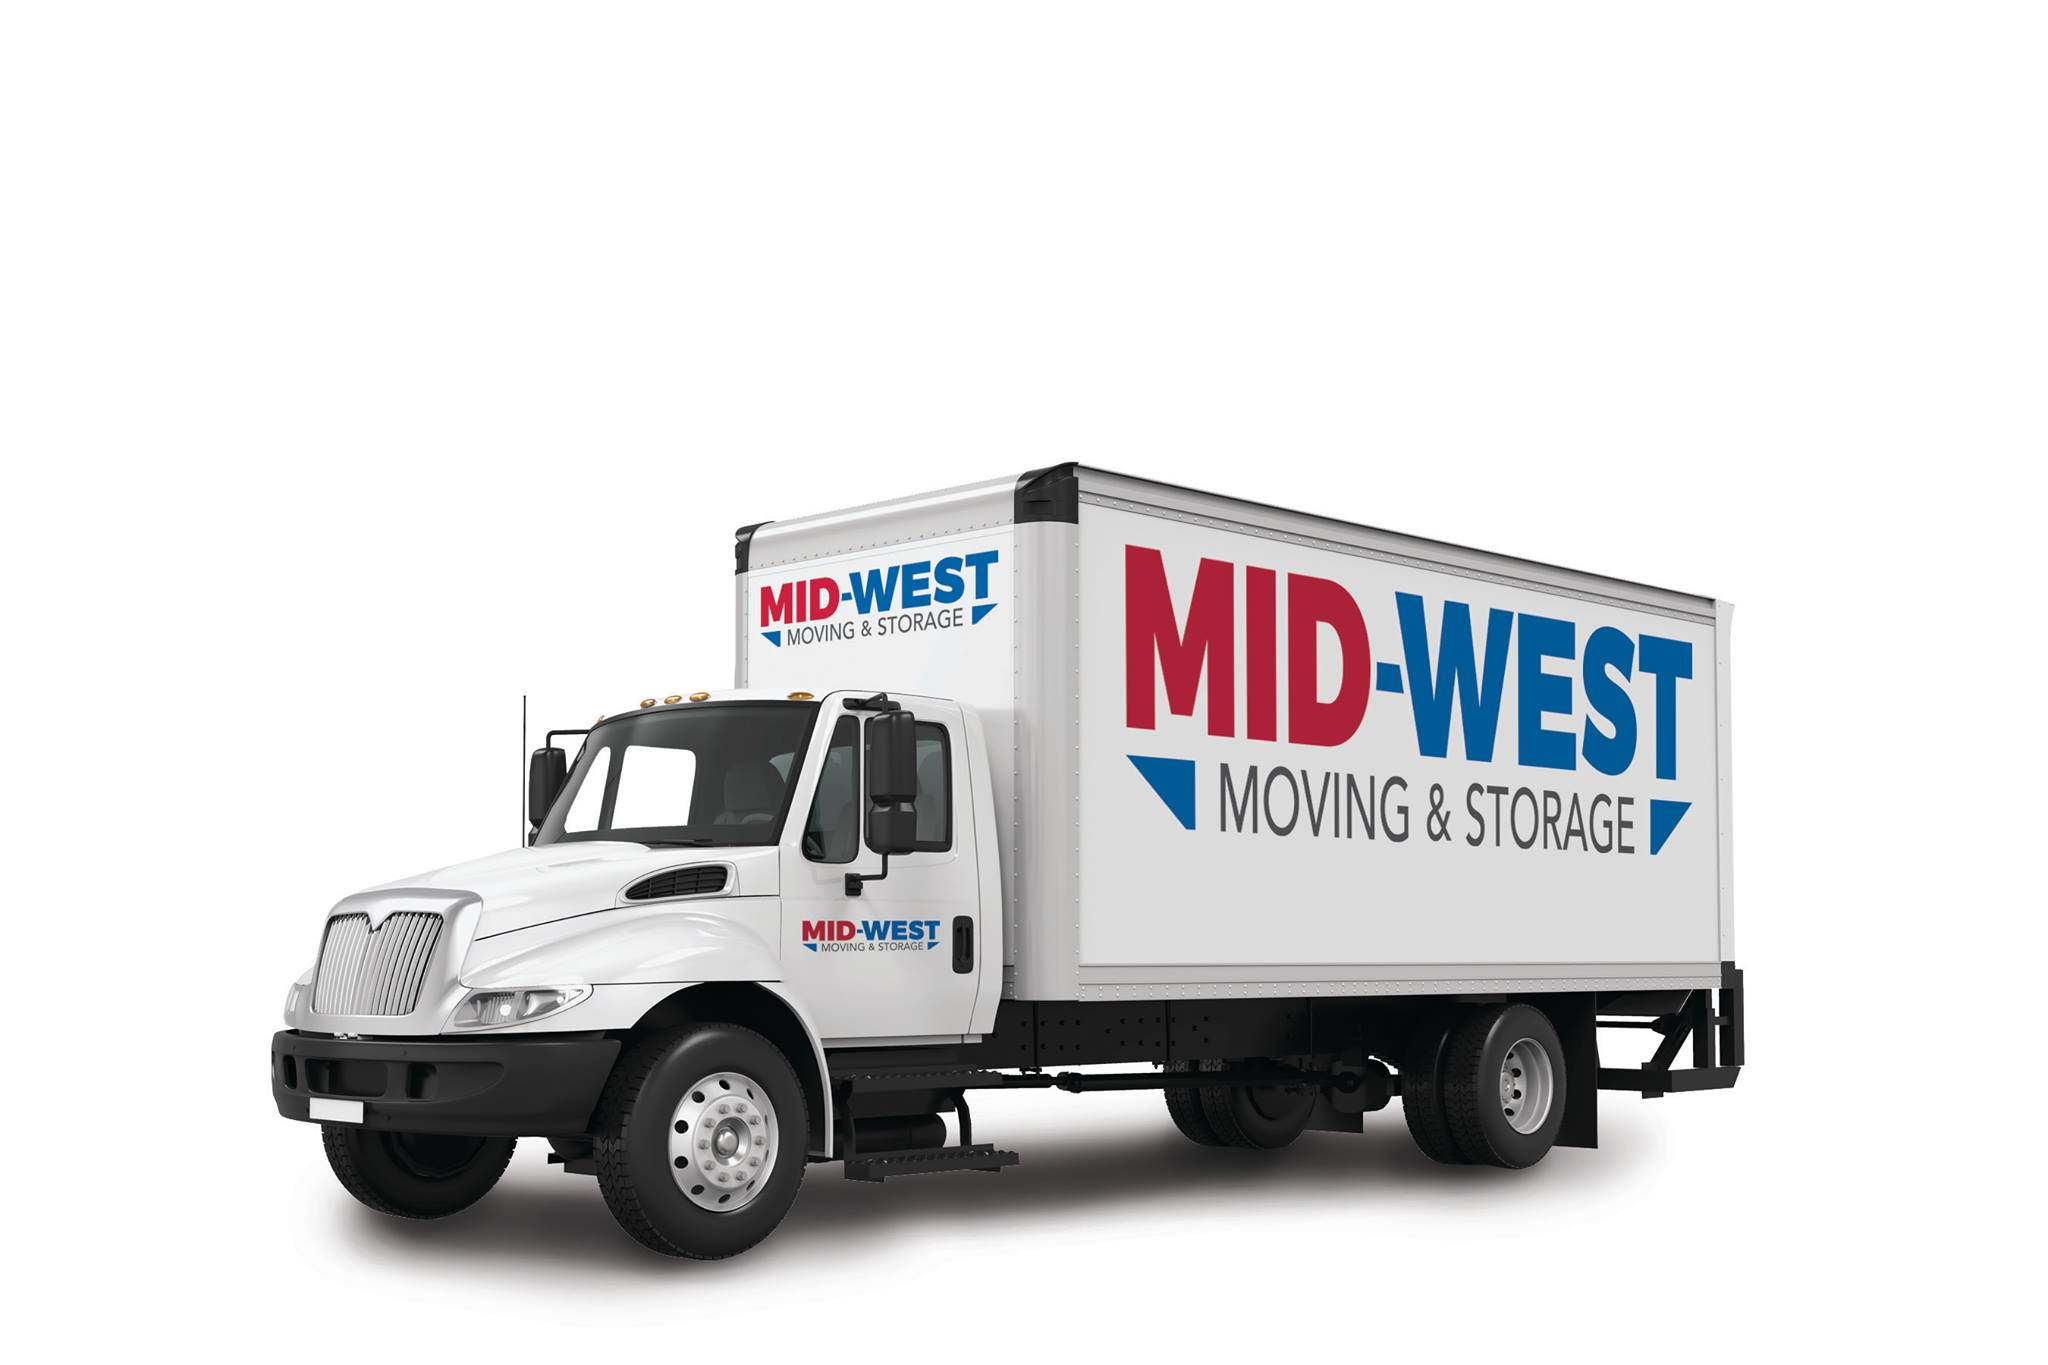 Mid-West-Moving-&-Storage-Truck